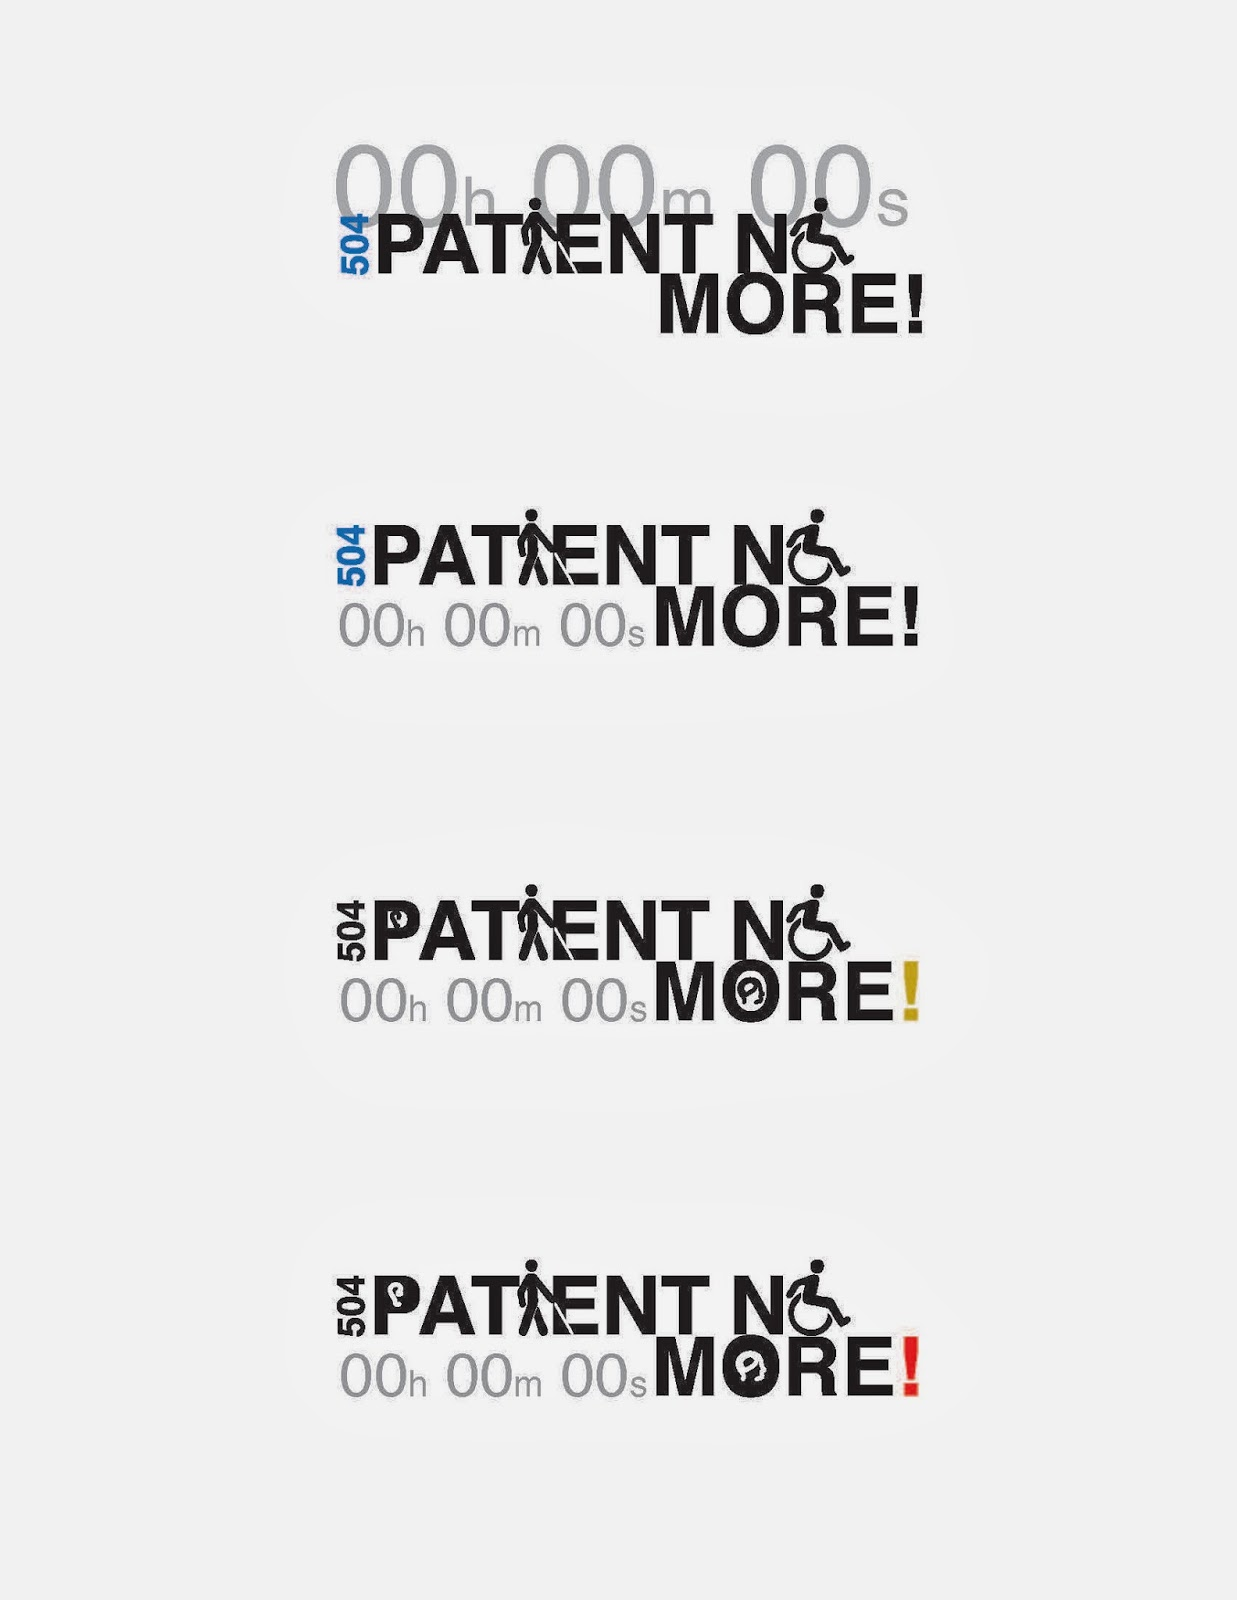 """Patient No More!"" logo idea incorporating disability symbols as letterforms"